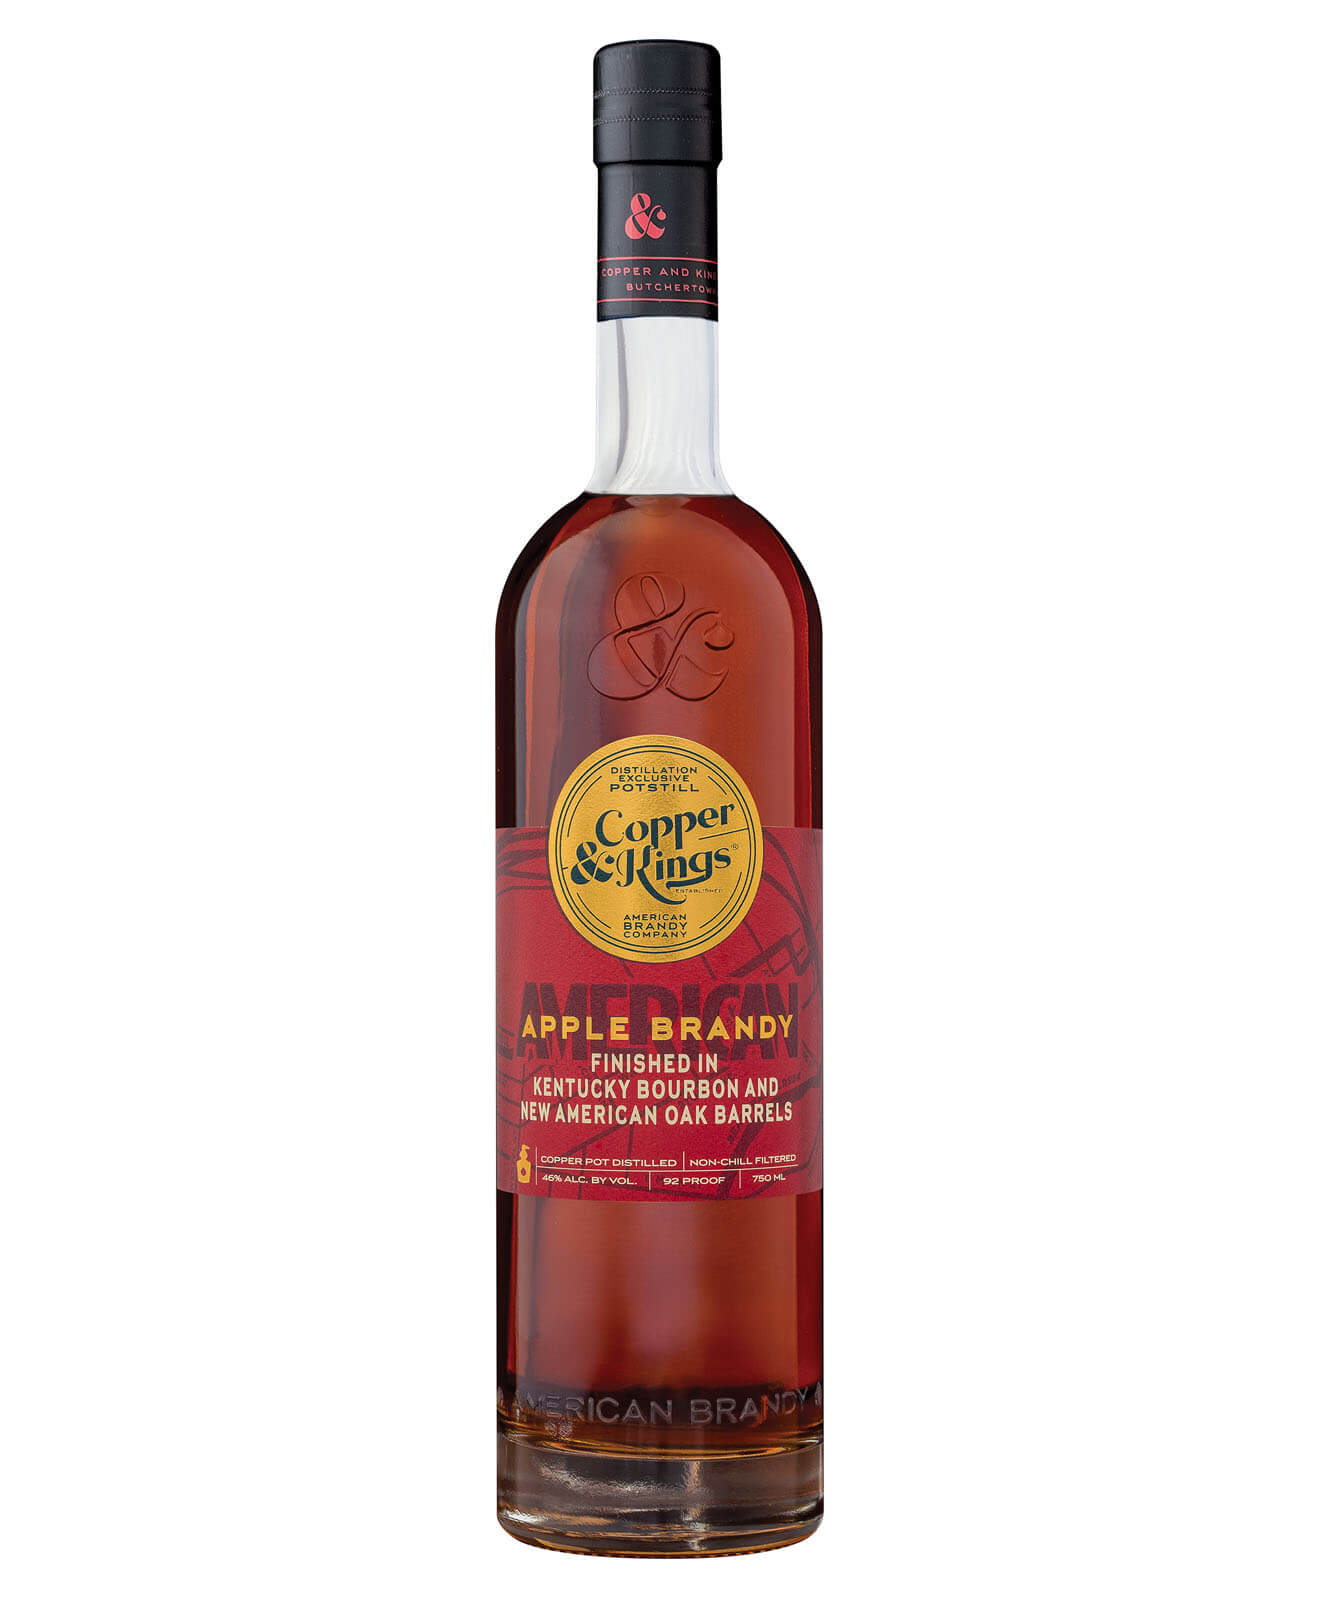 Copper & Kings American Apple Brandy, bottle on white